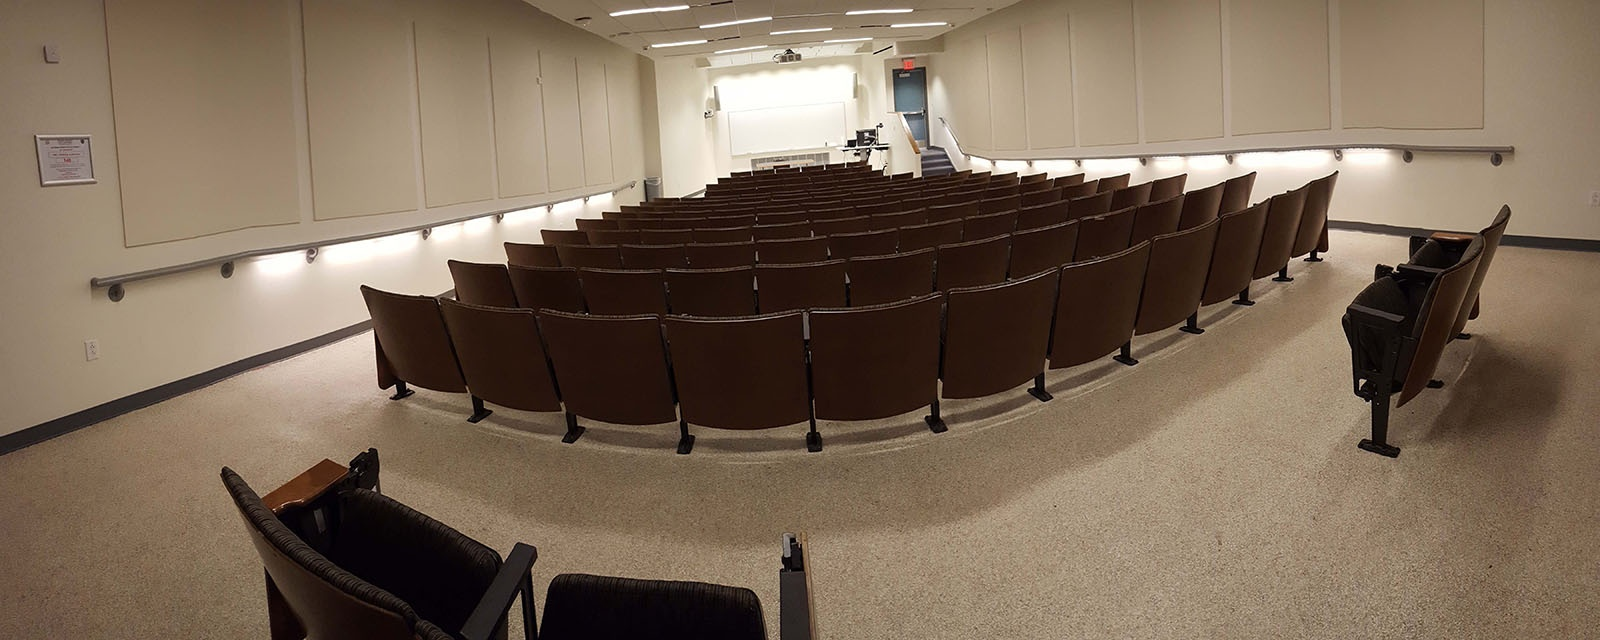 Panorama HBC Kittridge Auditorium from back of room to front of room, stadium seating, teaching station front left